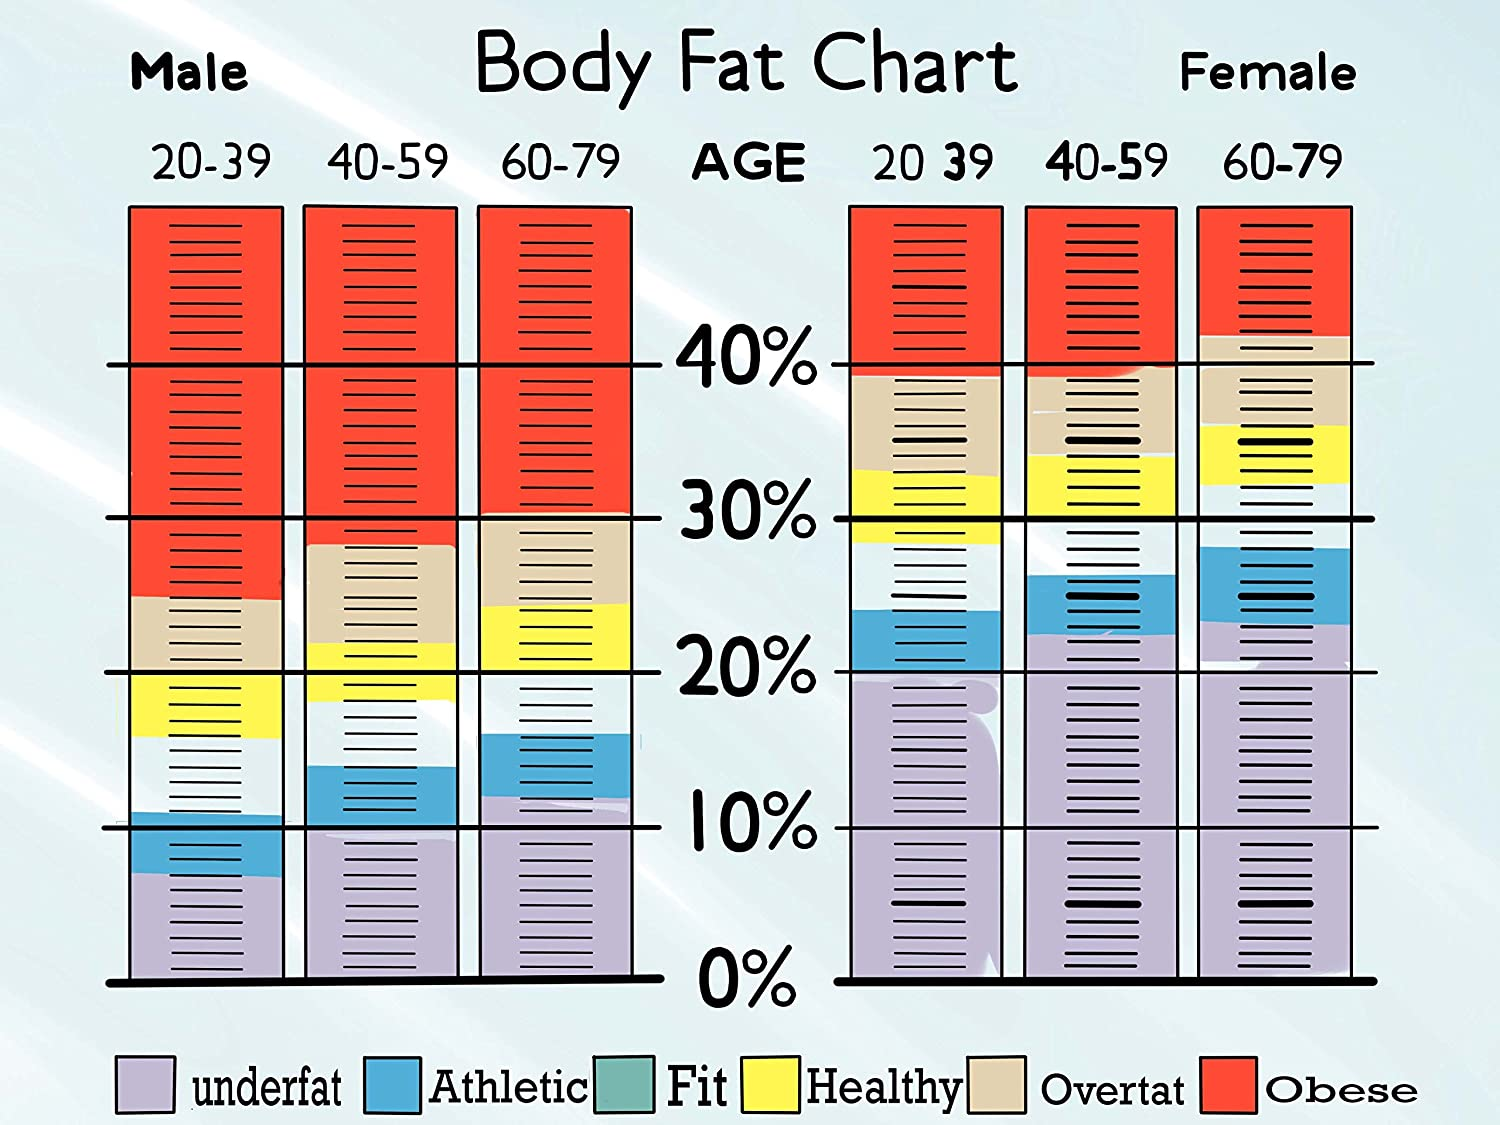 Body Fat Percentage Chart Template | Bodyfat Percentage For Abs Female Coast Guard Weight Standards